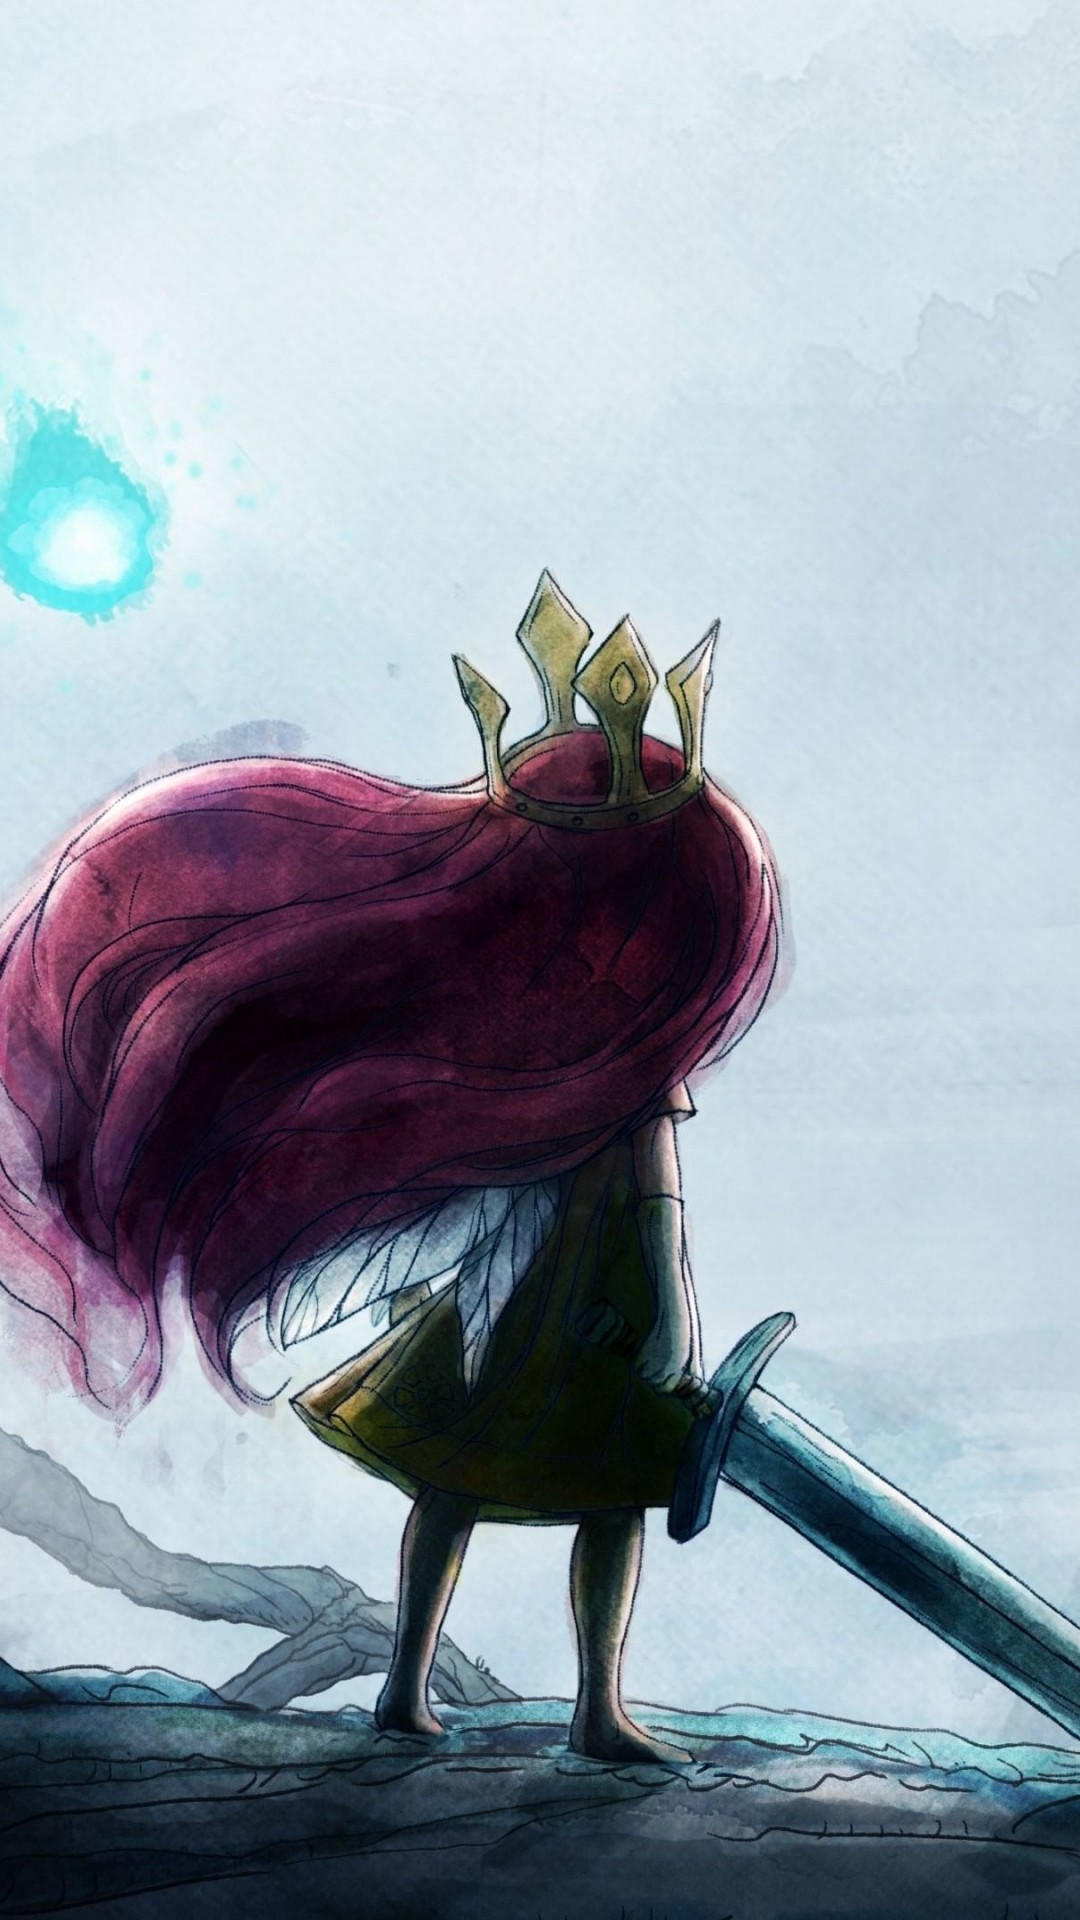 Child Of Light Wallpaper for SAMSUNG Galaxy S4